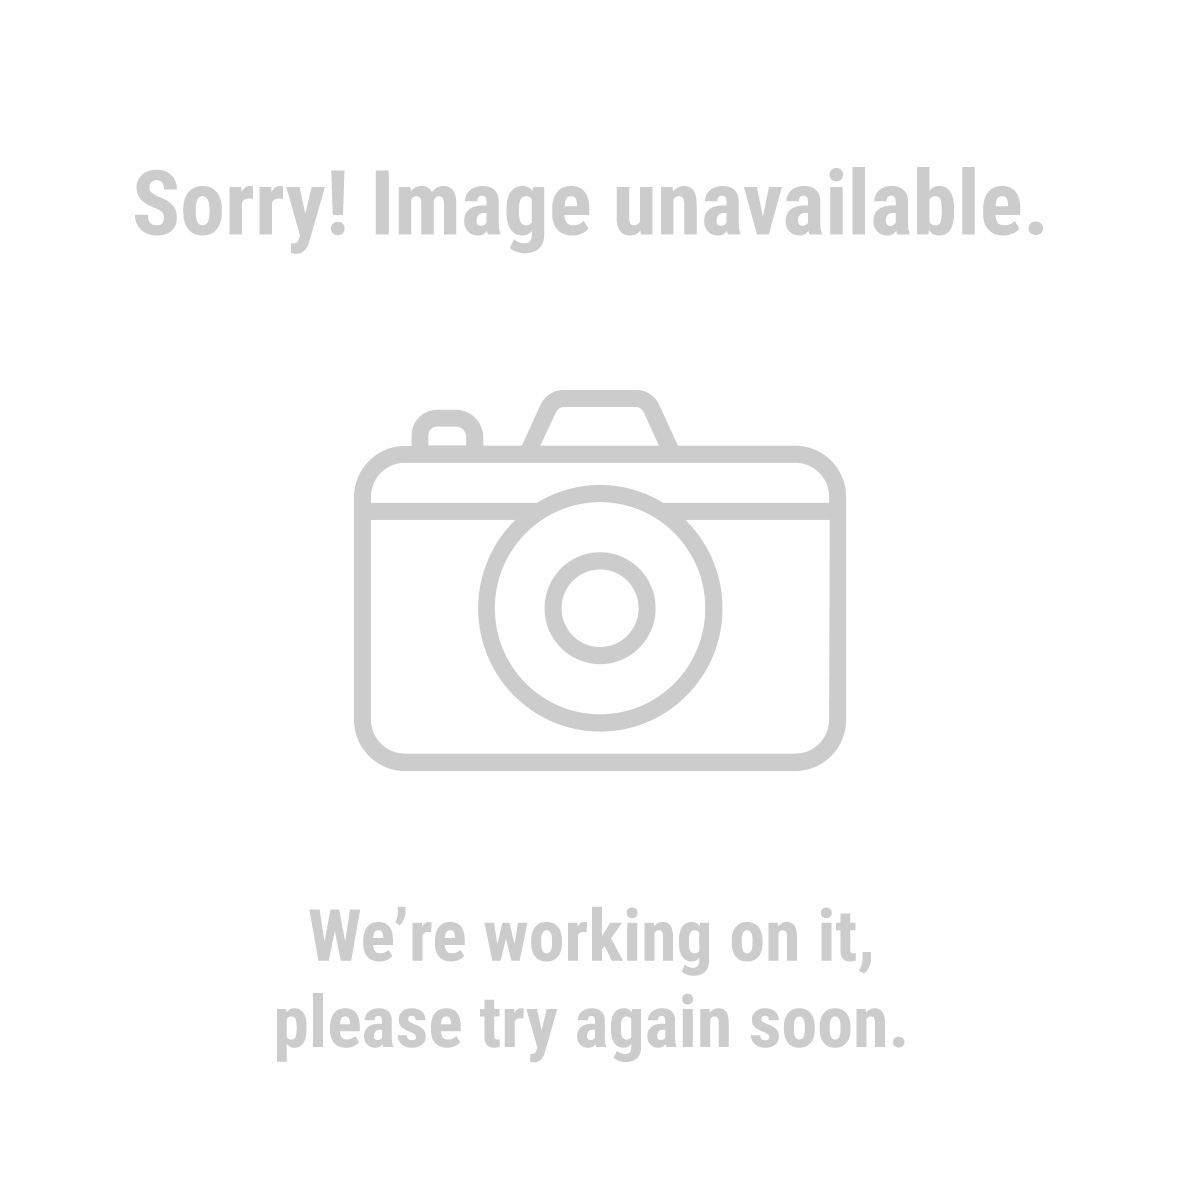 Combo Cable Bike Lock